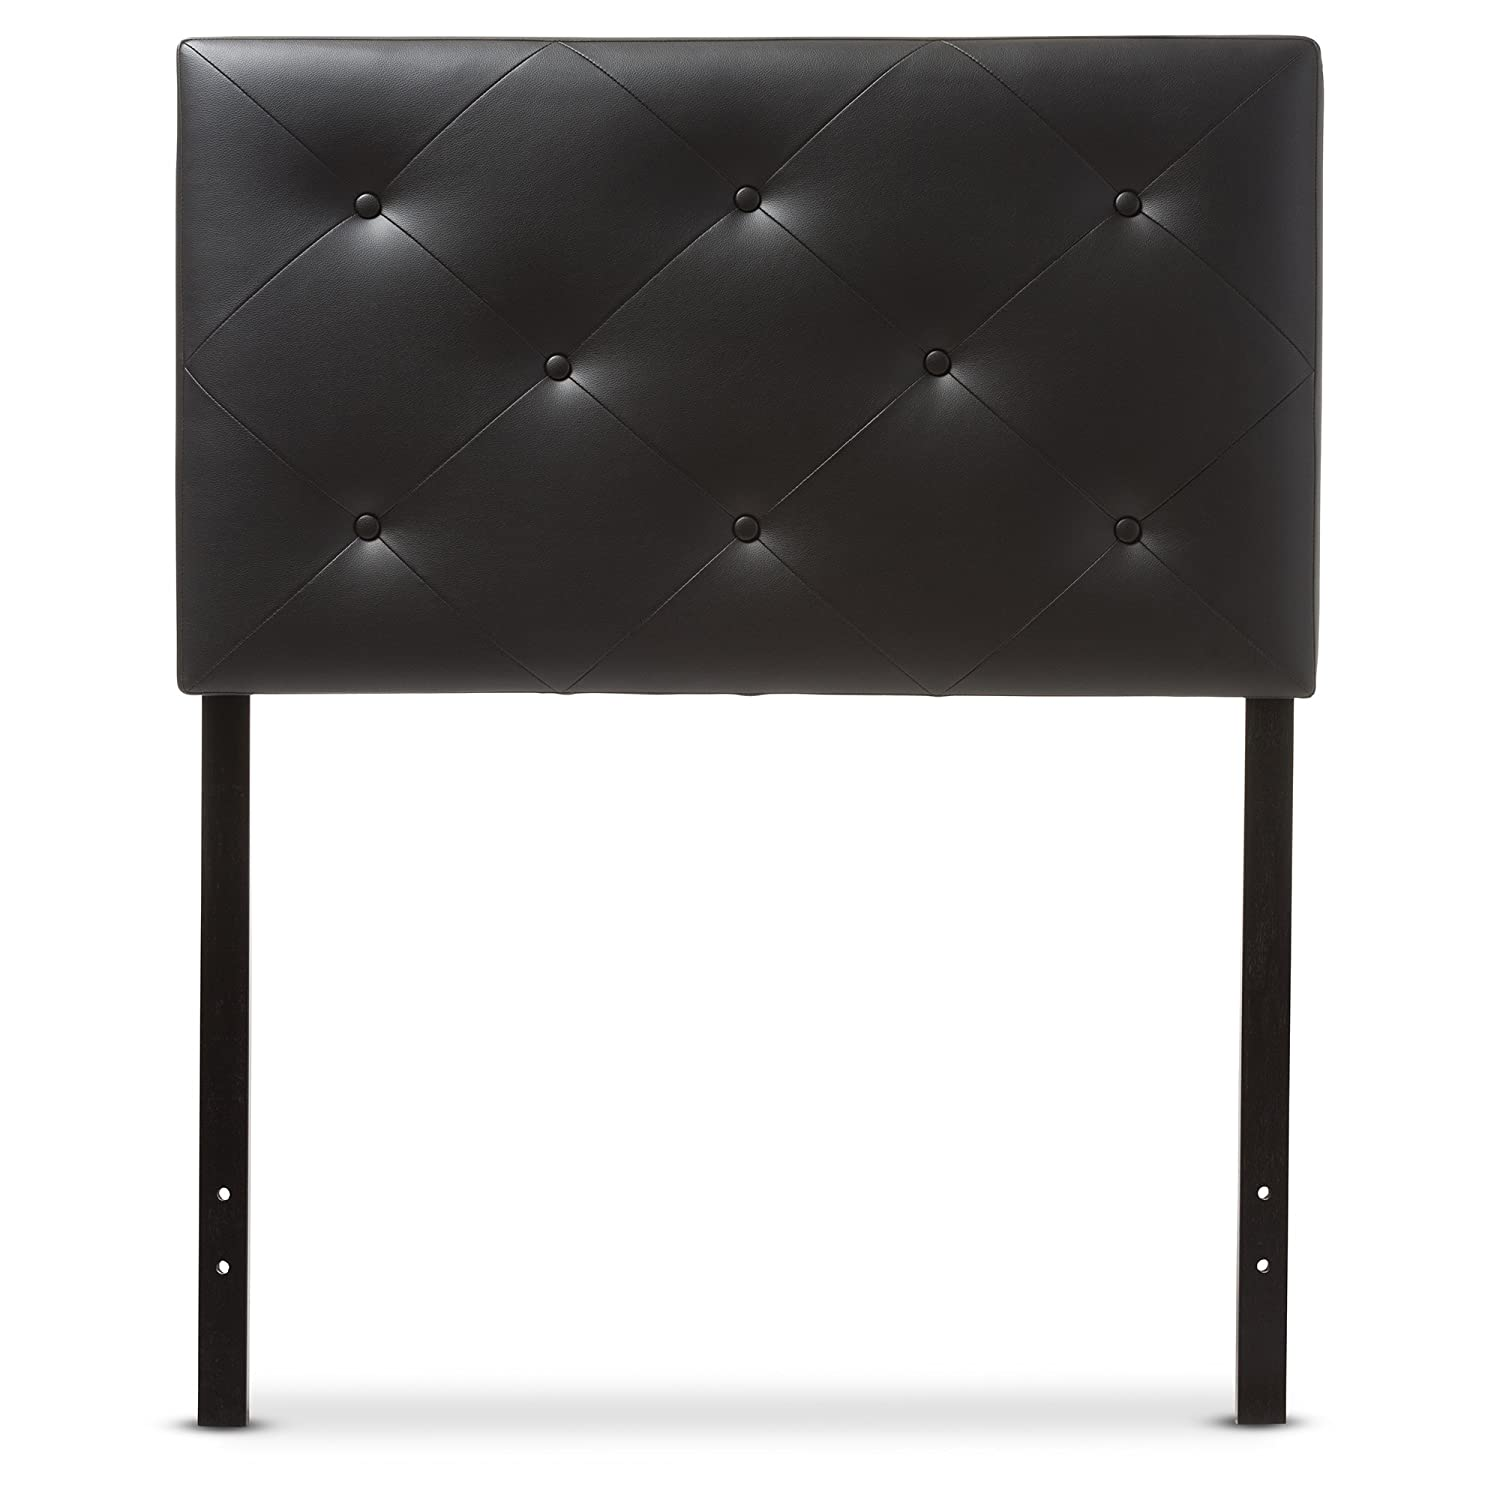 Baxton Studio Benoit Modern and Contemporary Black Faux Leather Upholstered Headboard - Twin